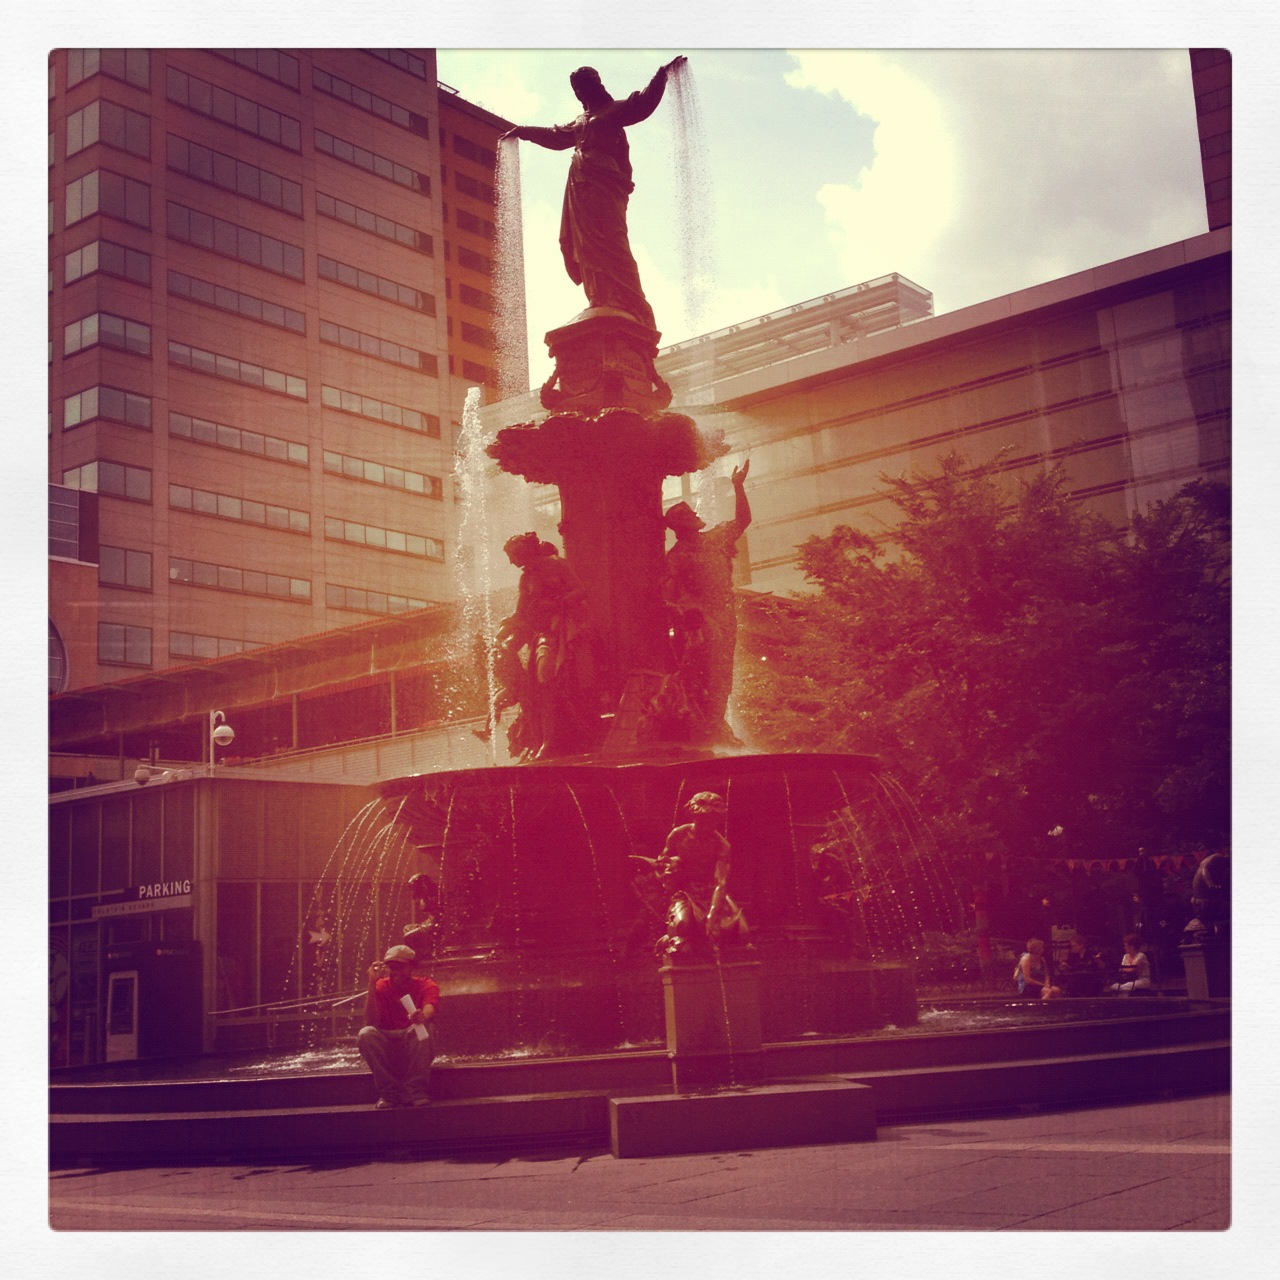 Picture I took while hanging out in the city…I love my wonderful Cincinnati!